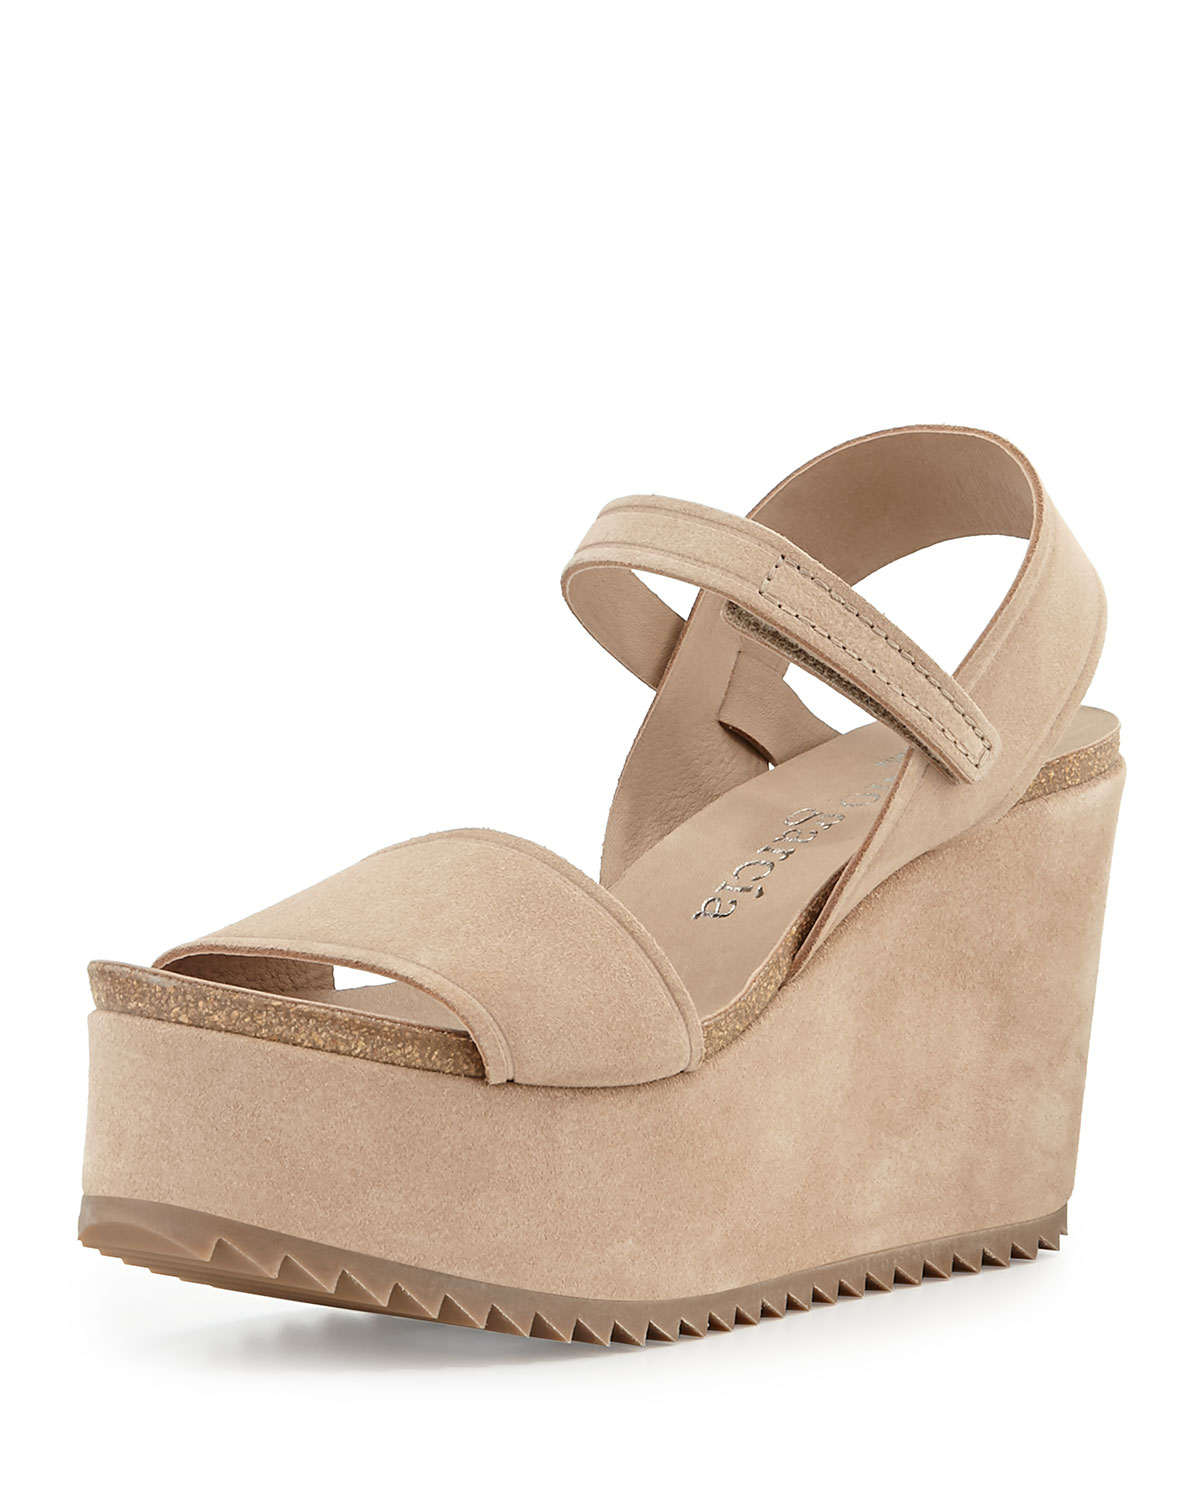 Pedro Garcia Suede Platform Sandals cheap sale Manchester many kinds of sale online amazon cheap price 2014 newest cheap price cheap real authentic 3yHtL